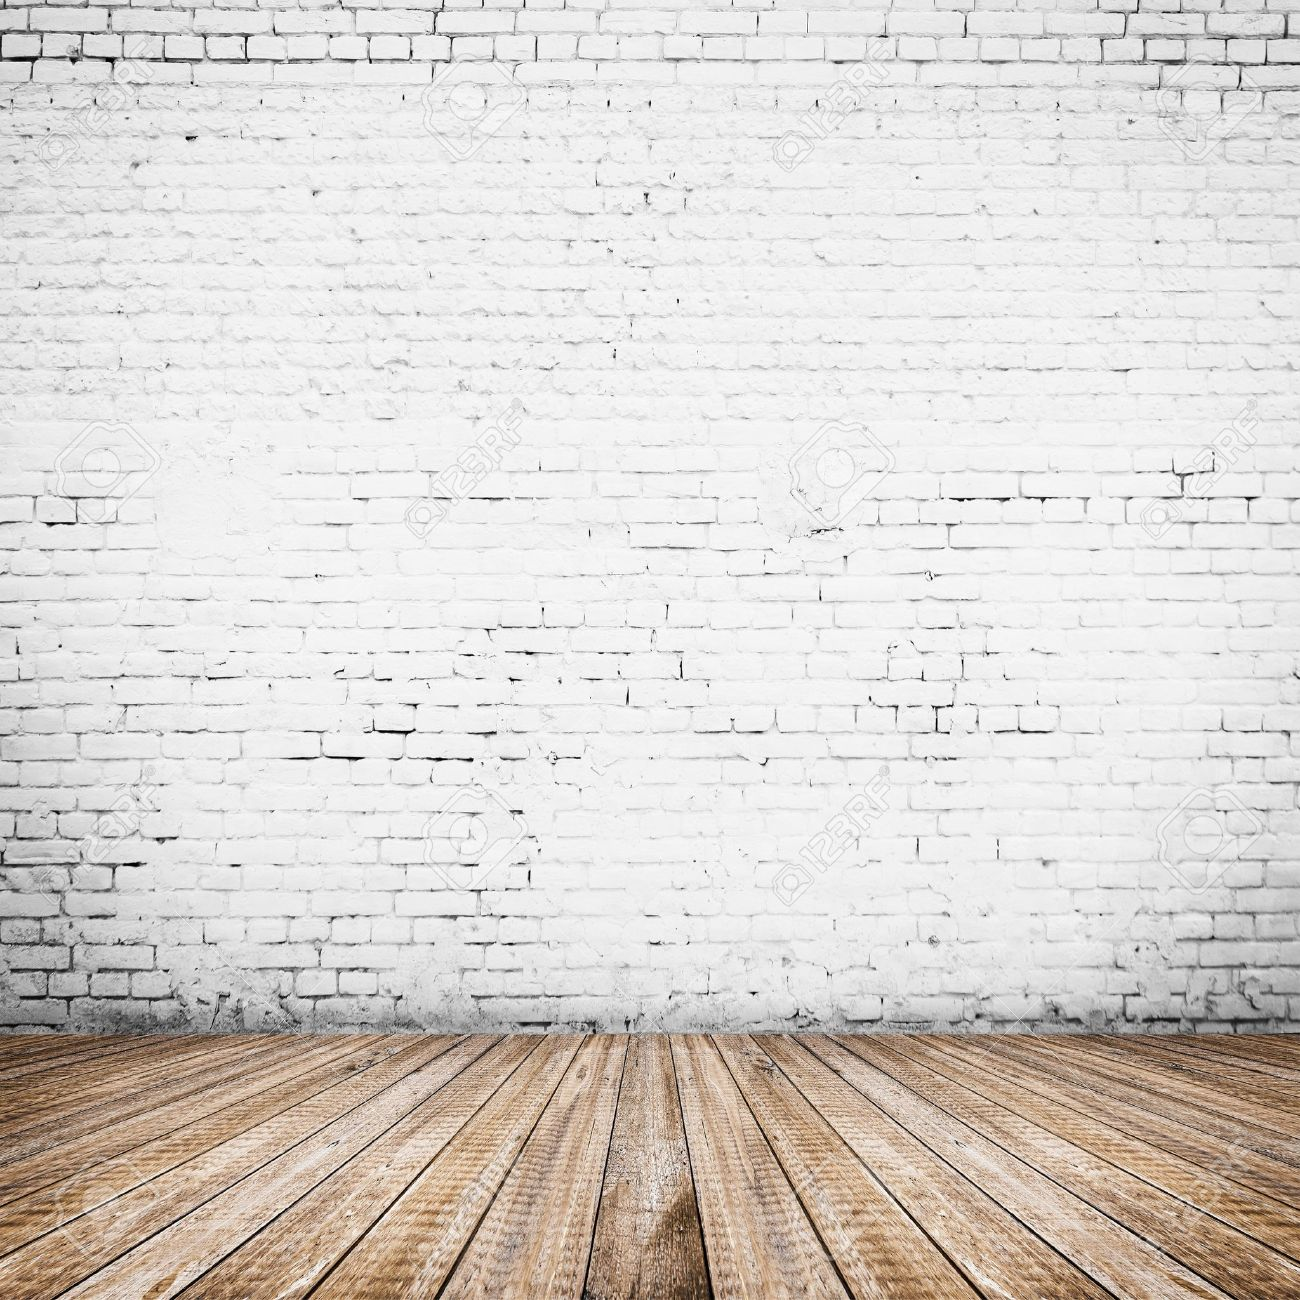 Room Interior Vintage With White Brick Wall And Wood Floor Stock Photo Picture And Royalty Free Image Image 25038345